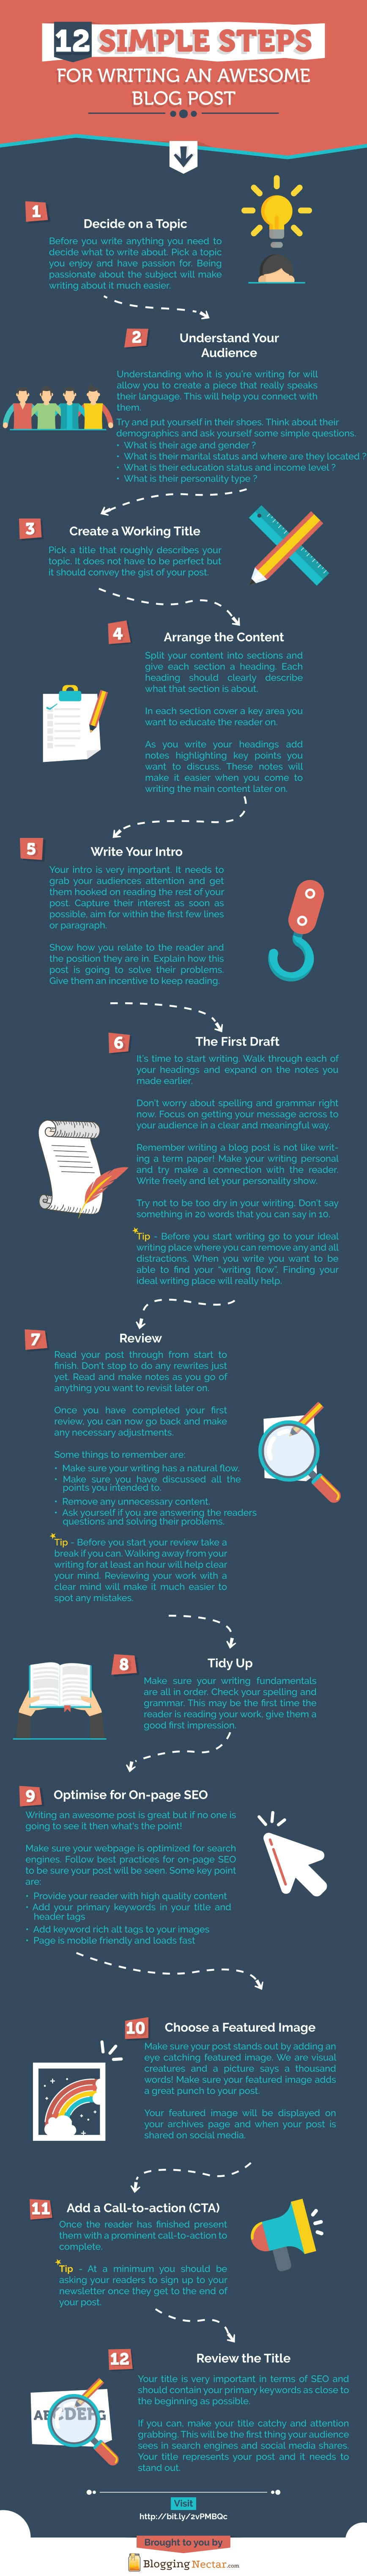 12 Simple Steps for Writing an Awesome Blog Post [Infographic] | Social Media Today